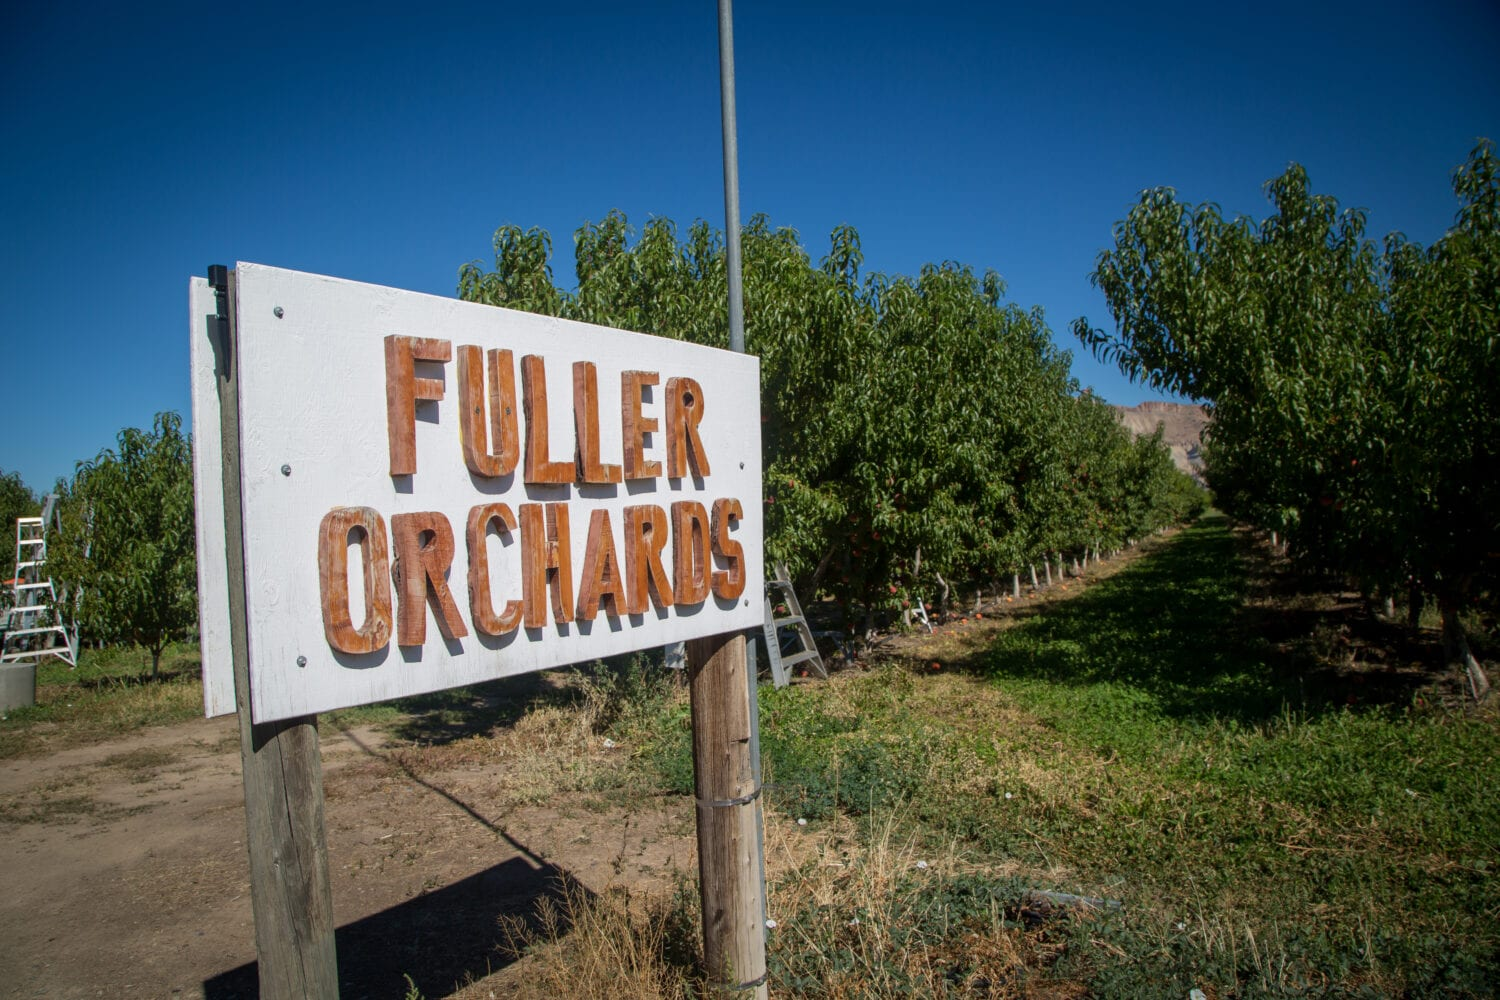 fuller orchards entrance sign